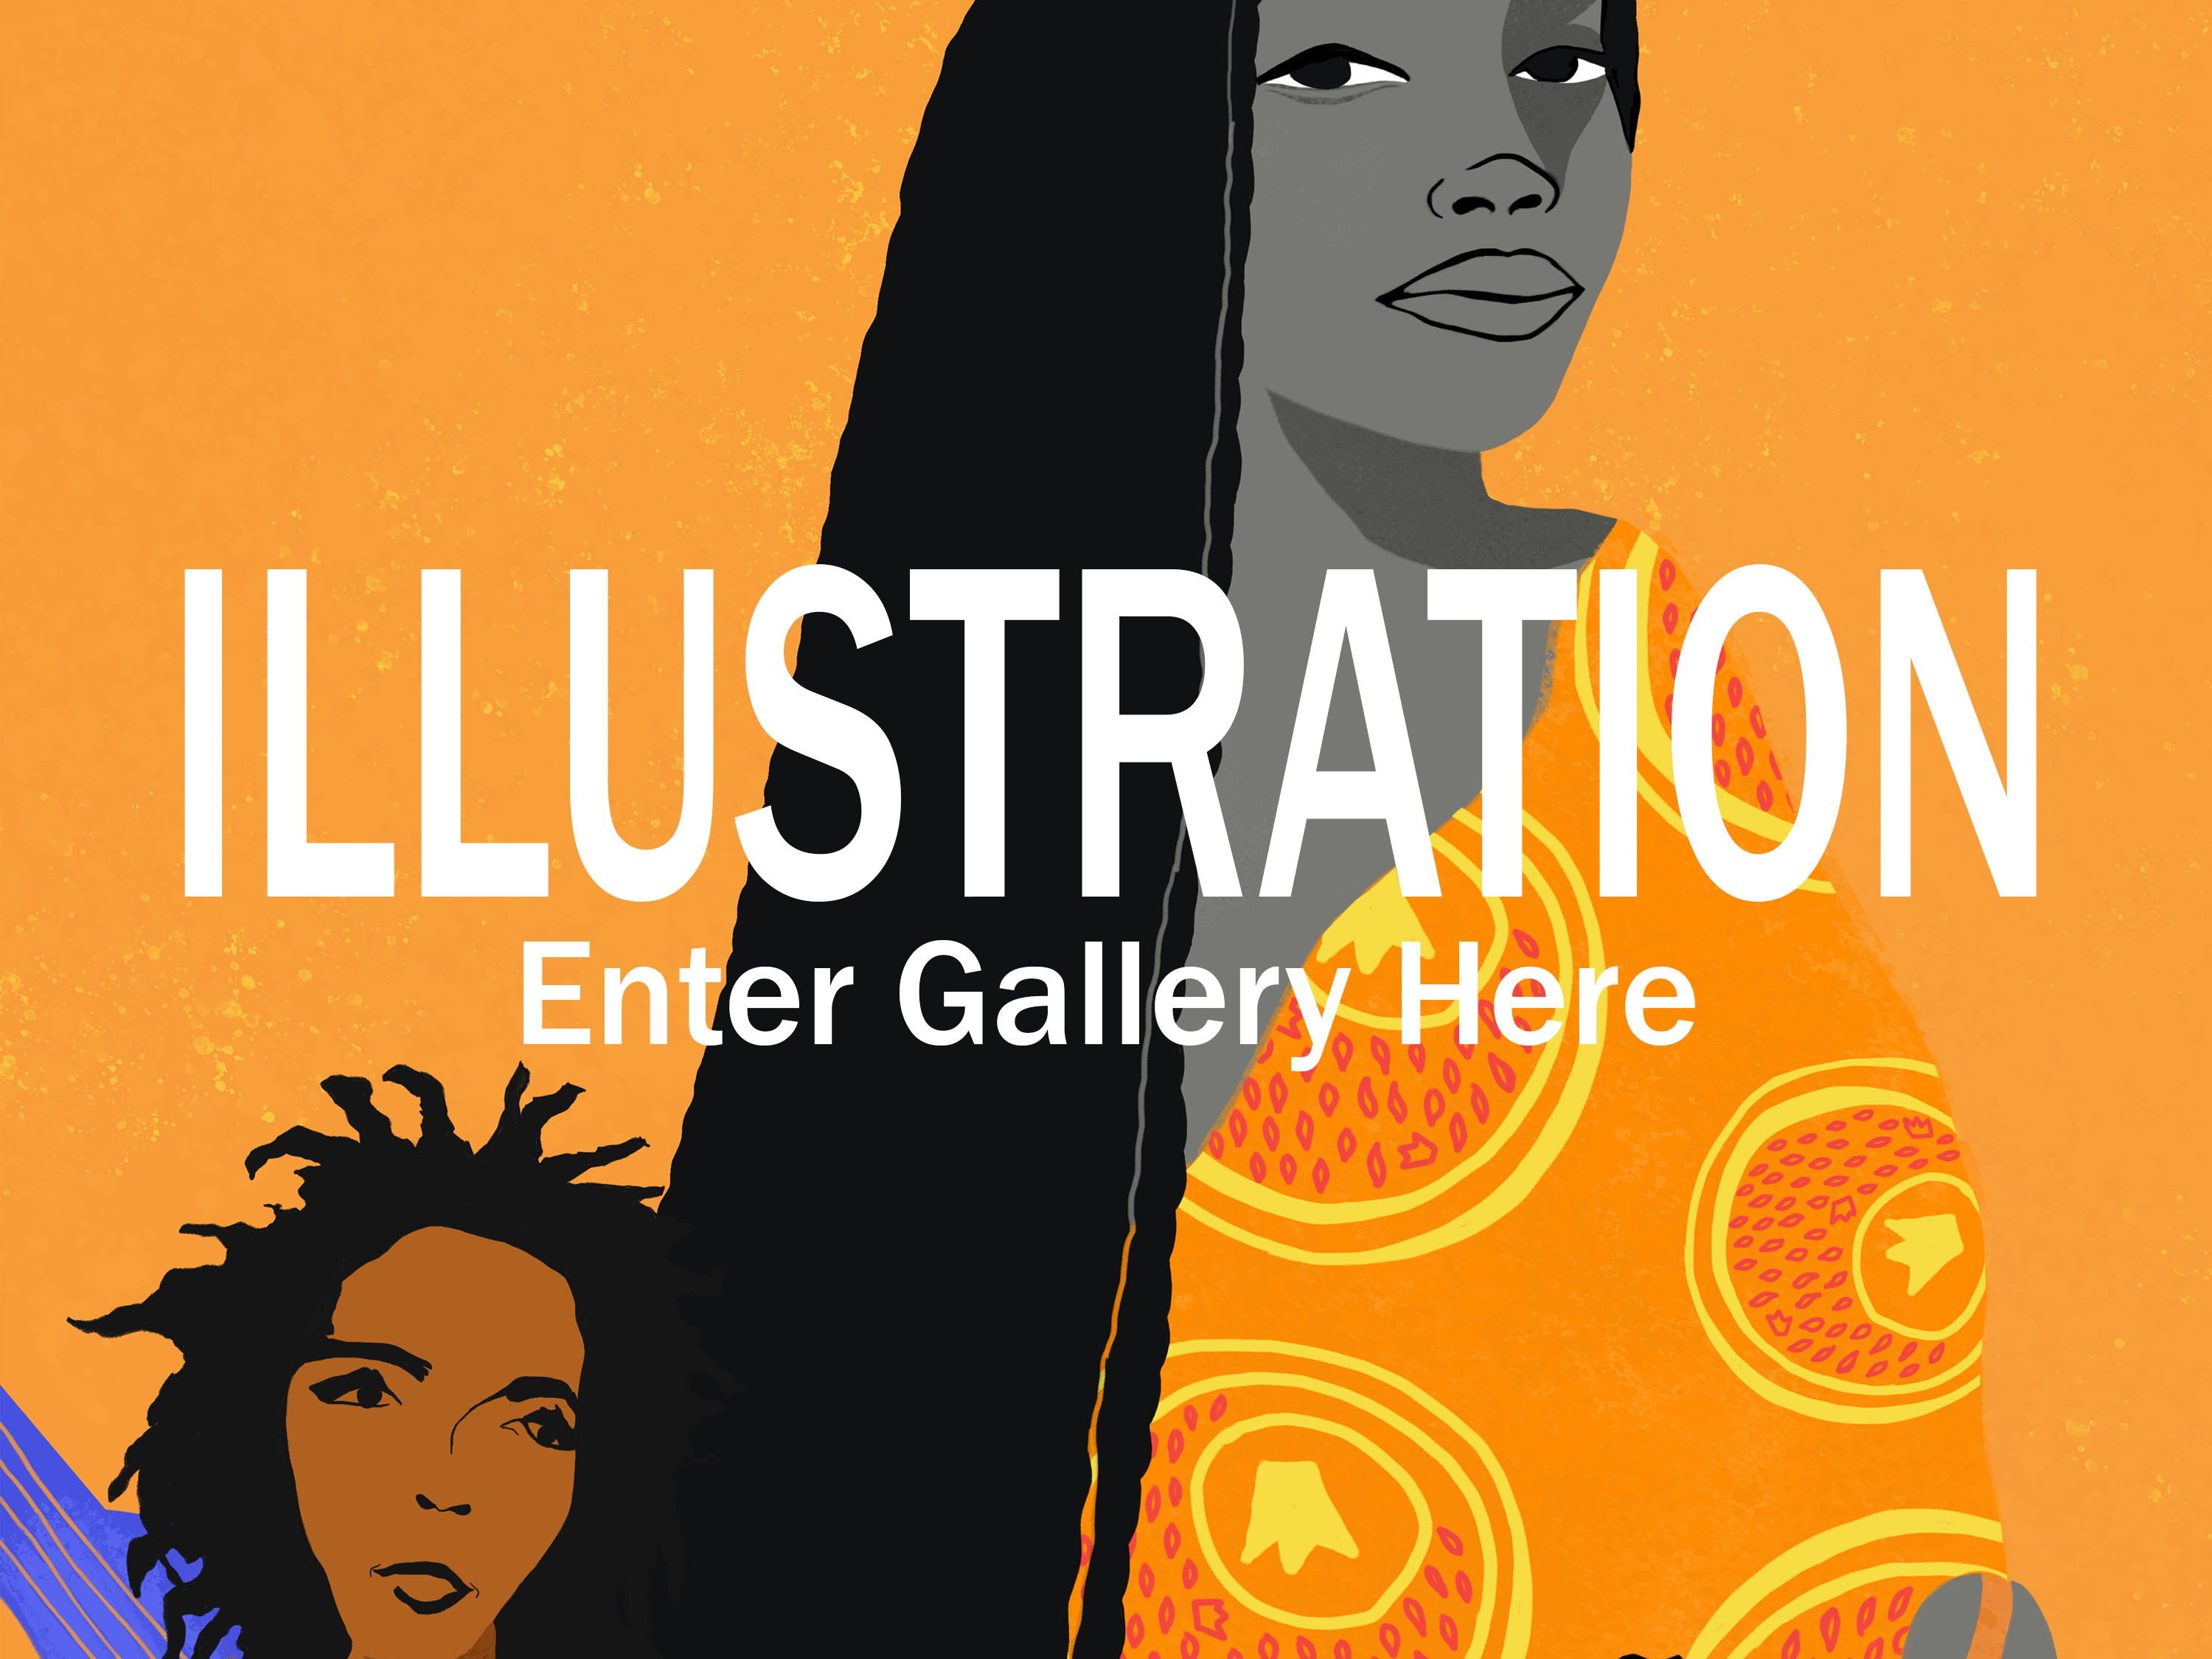 Enter Illustration Gallery Here